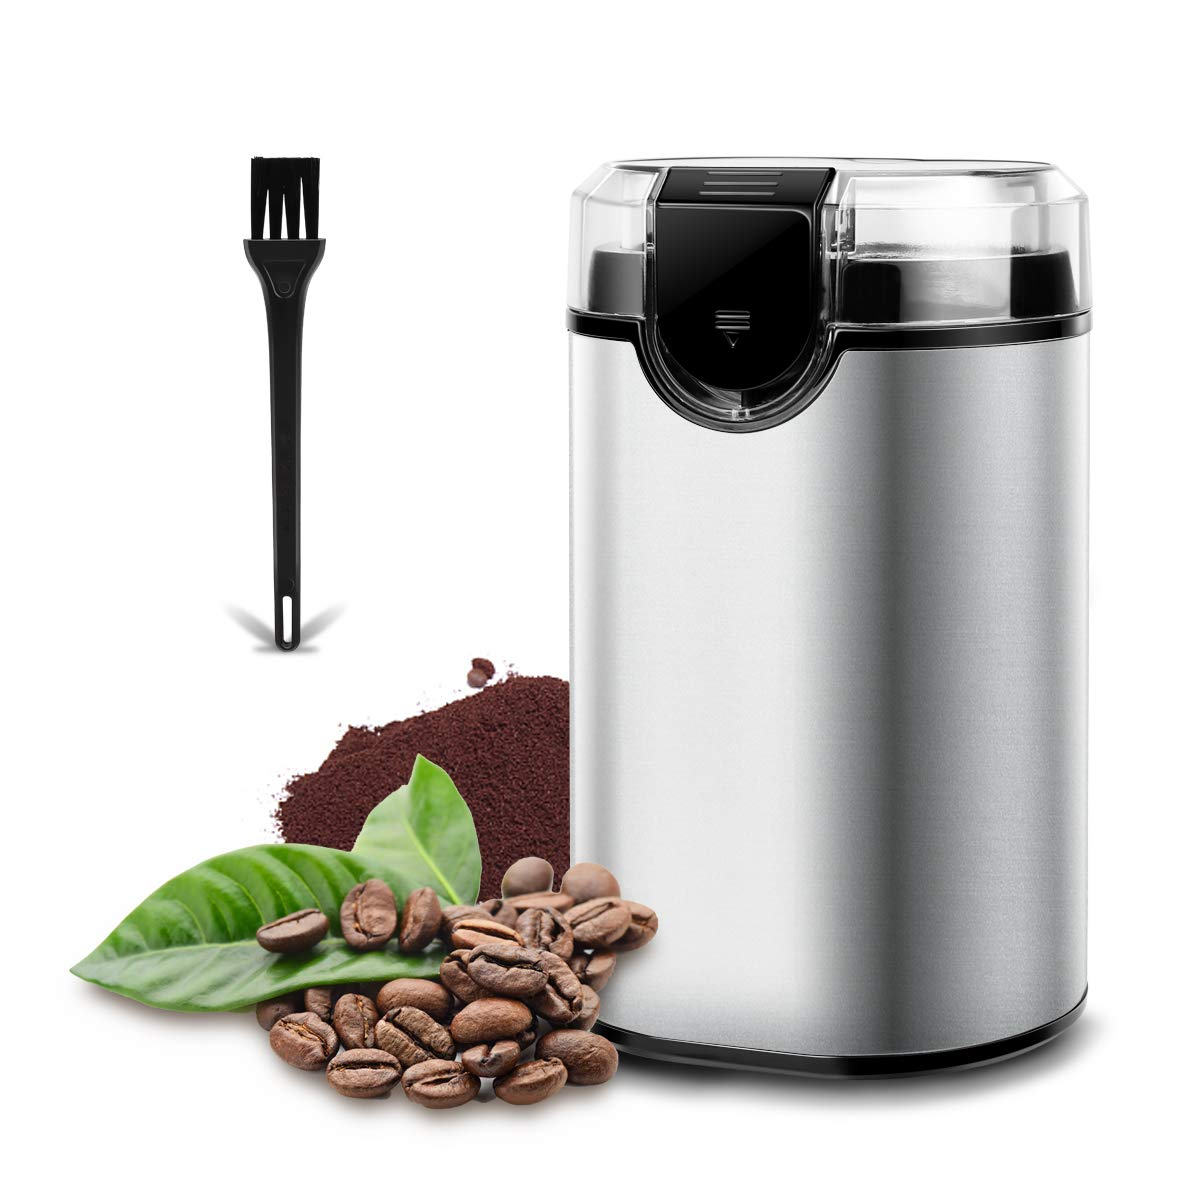 Electric Coffee Grinder, Multifunctional Spice Grinderwith Stainless Steel Blade Large Grinding Capacity Fast Grinding Coffee Beans, Nuts, Grains, Spices (Silver)